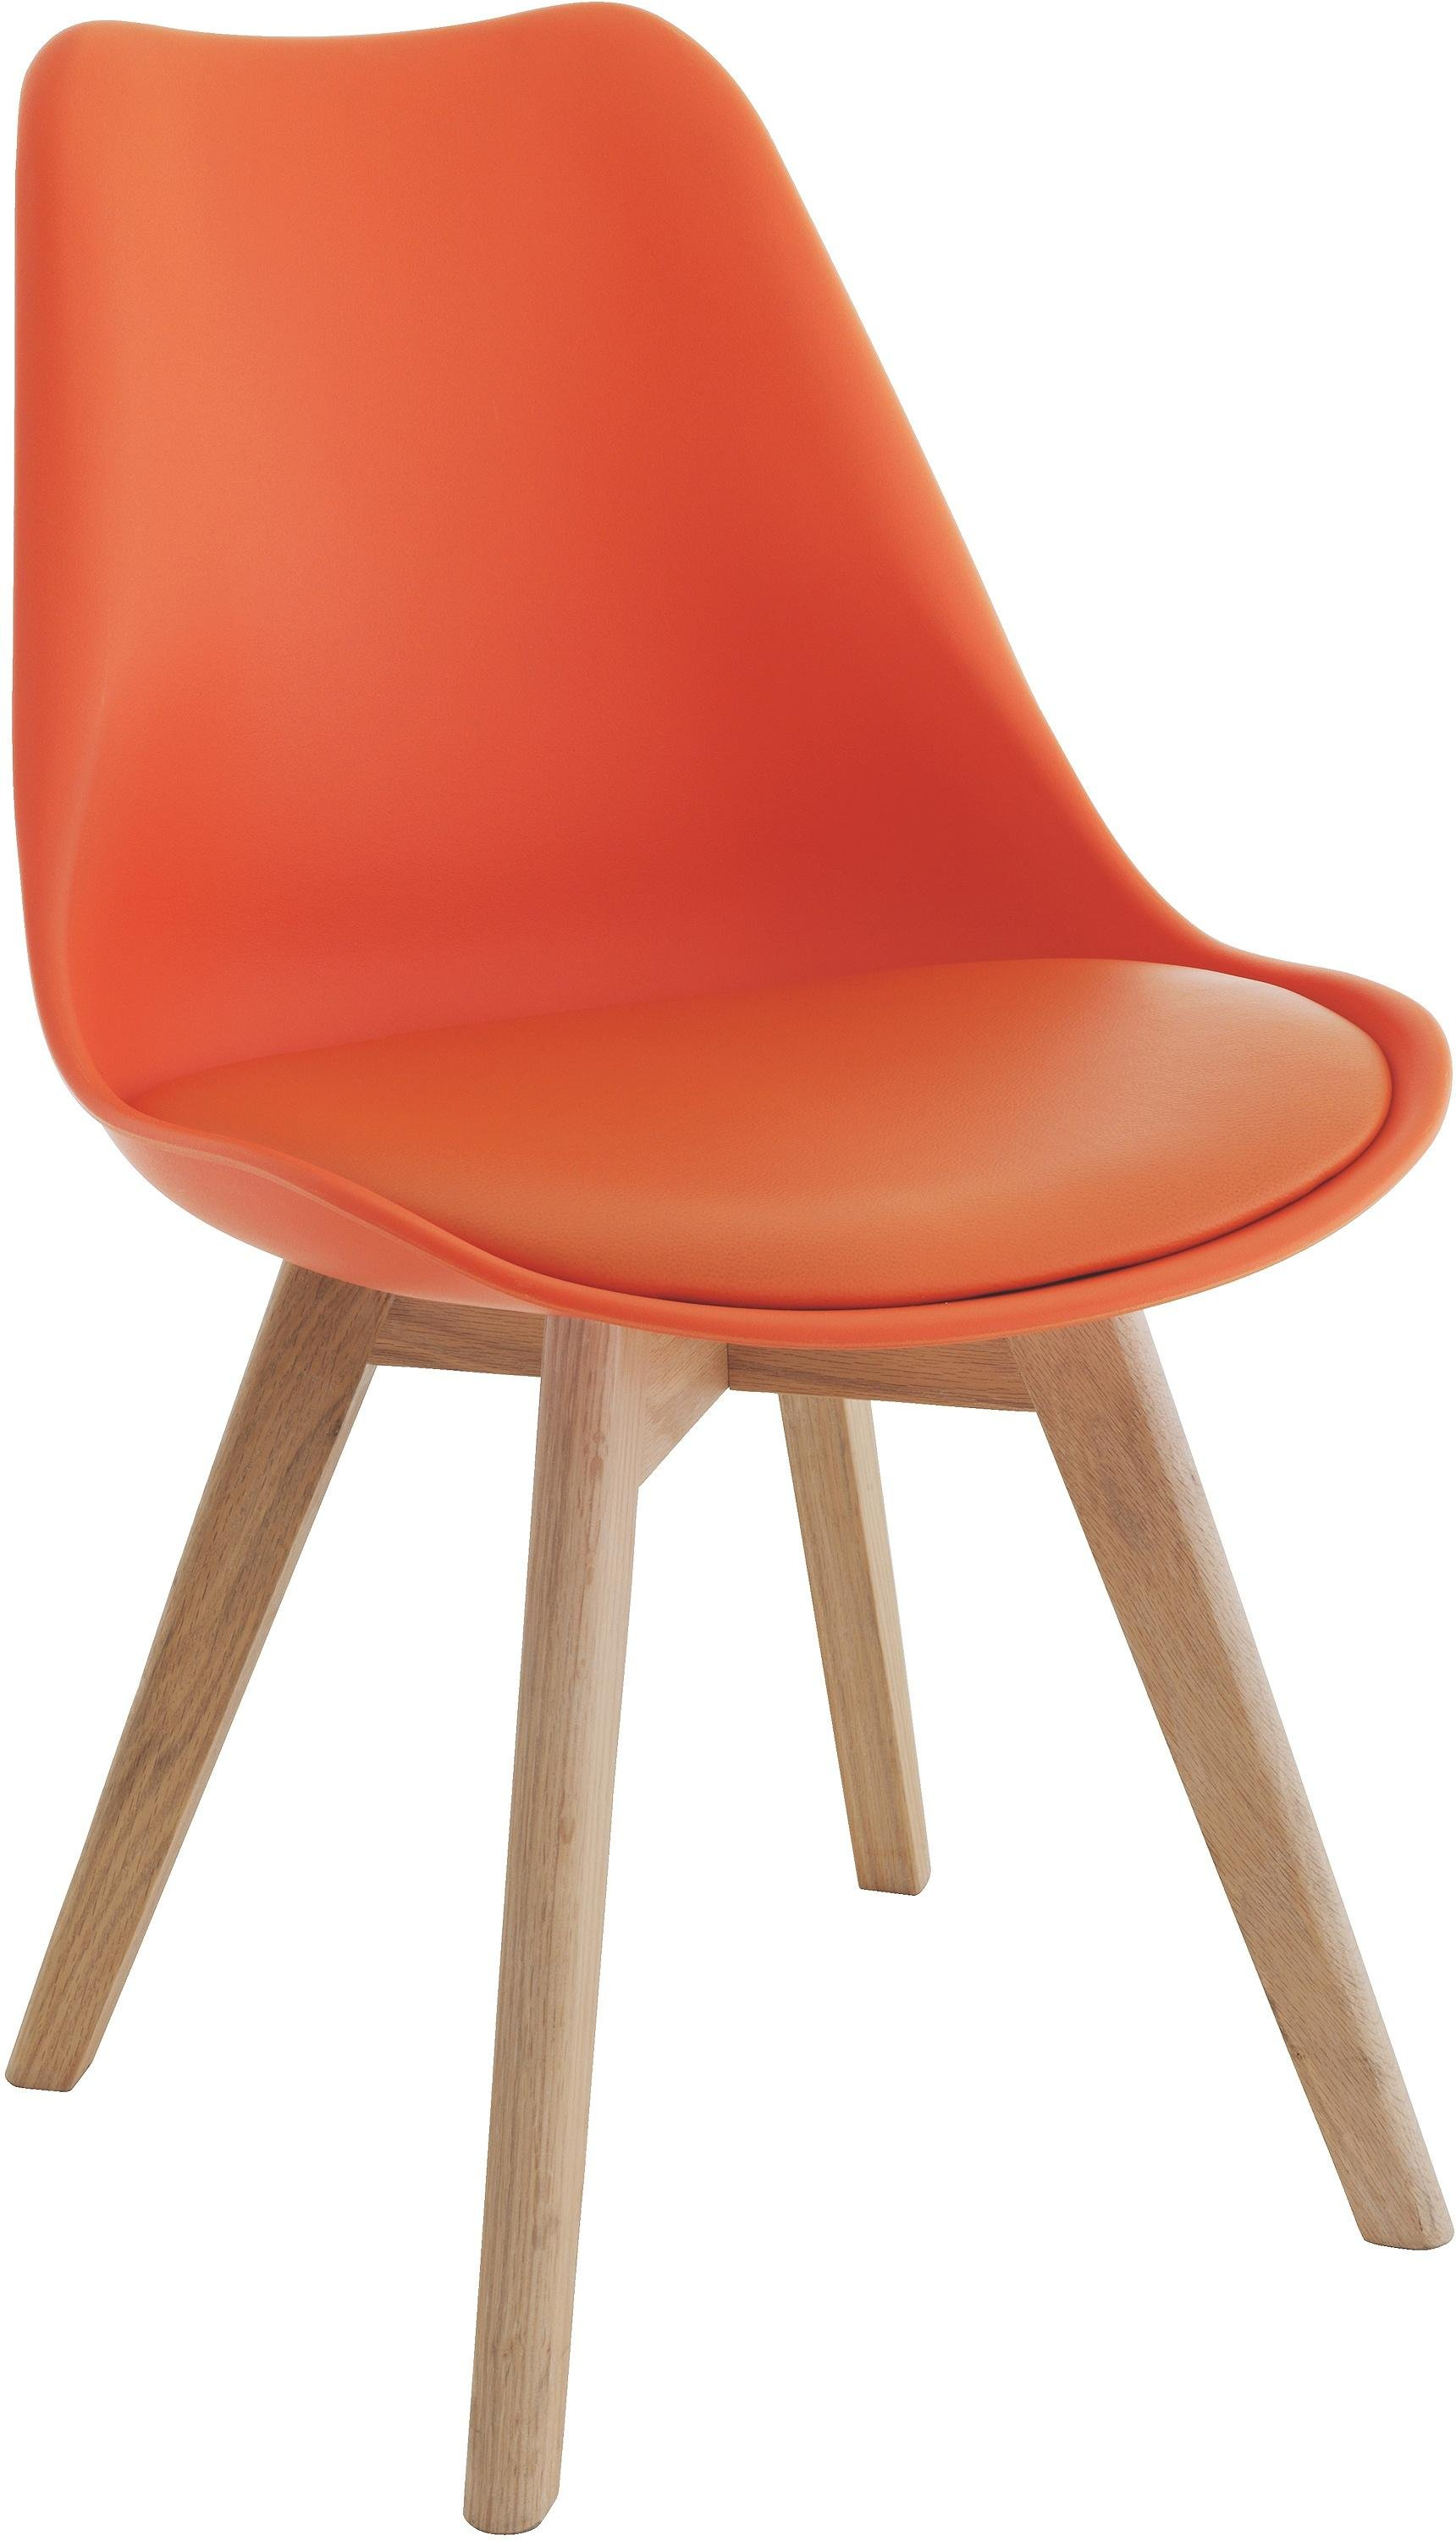 Buy Duck egg Childrens tables and chairs at Argoscouk  : 2581307RZ001AUC17539824 from www.argos.co.uk size 1720 x 3000 jpeg 244kB